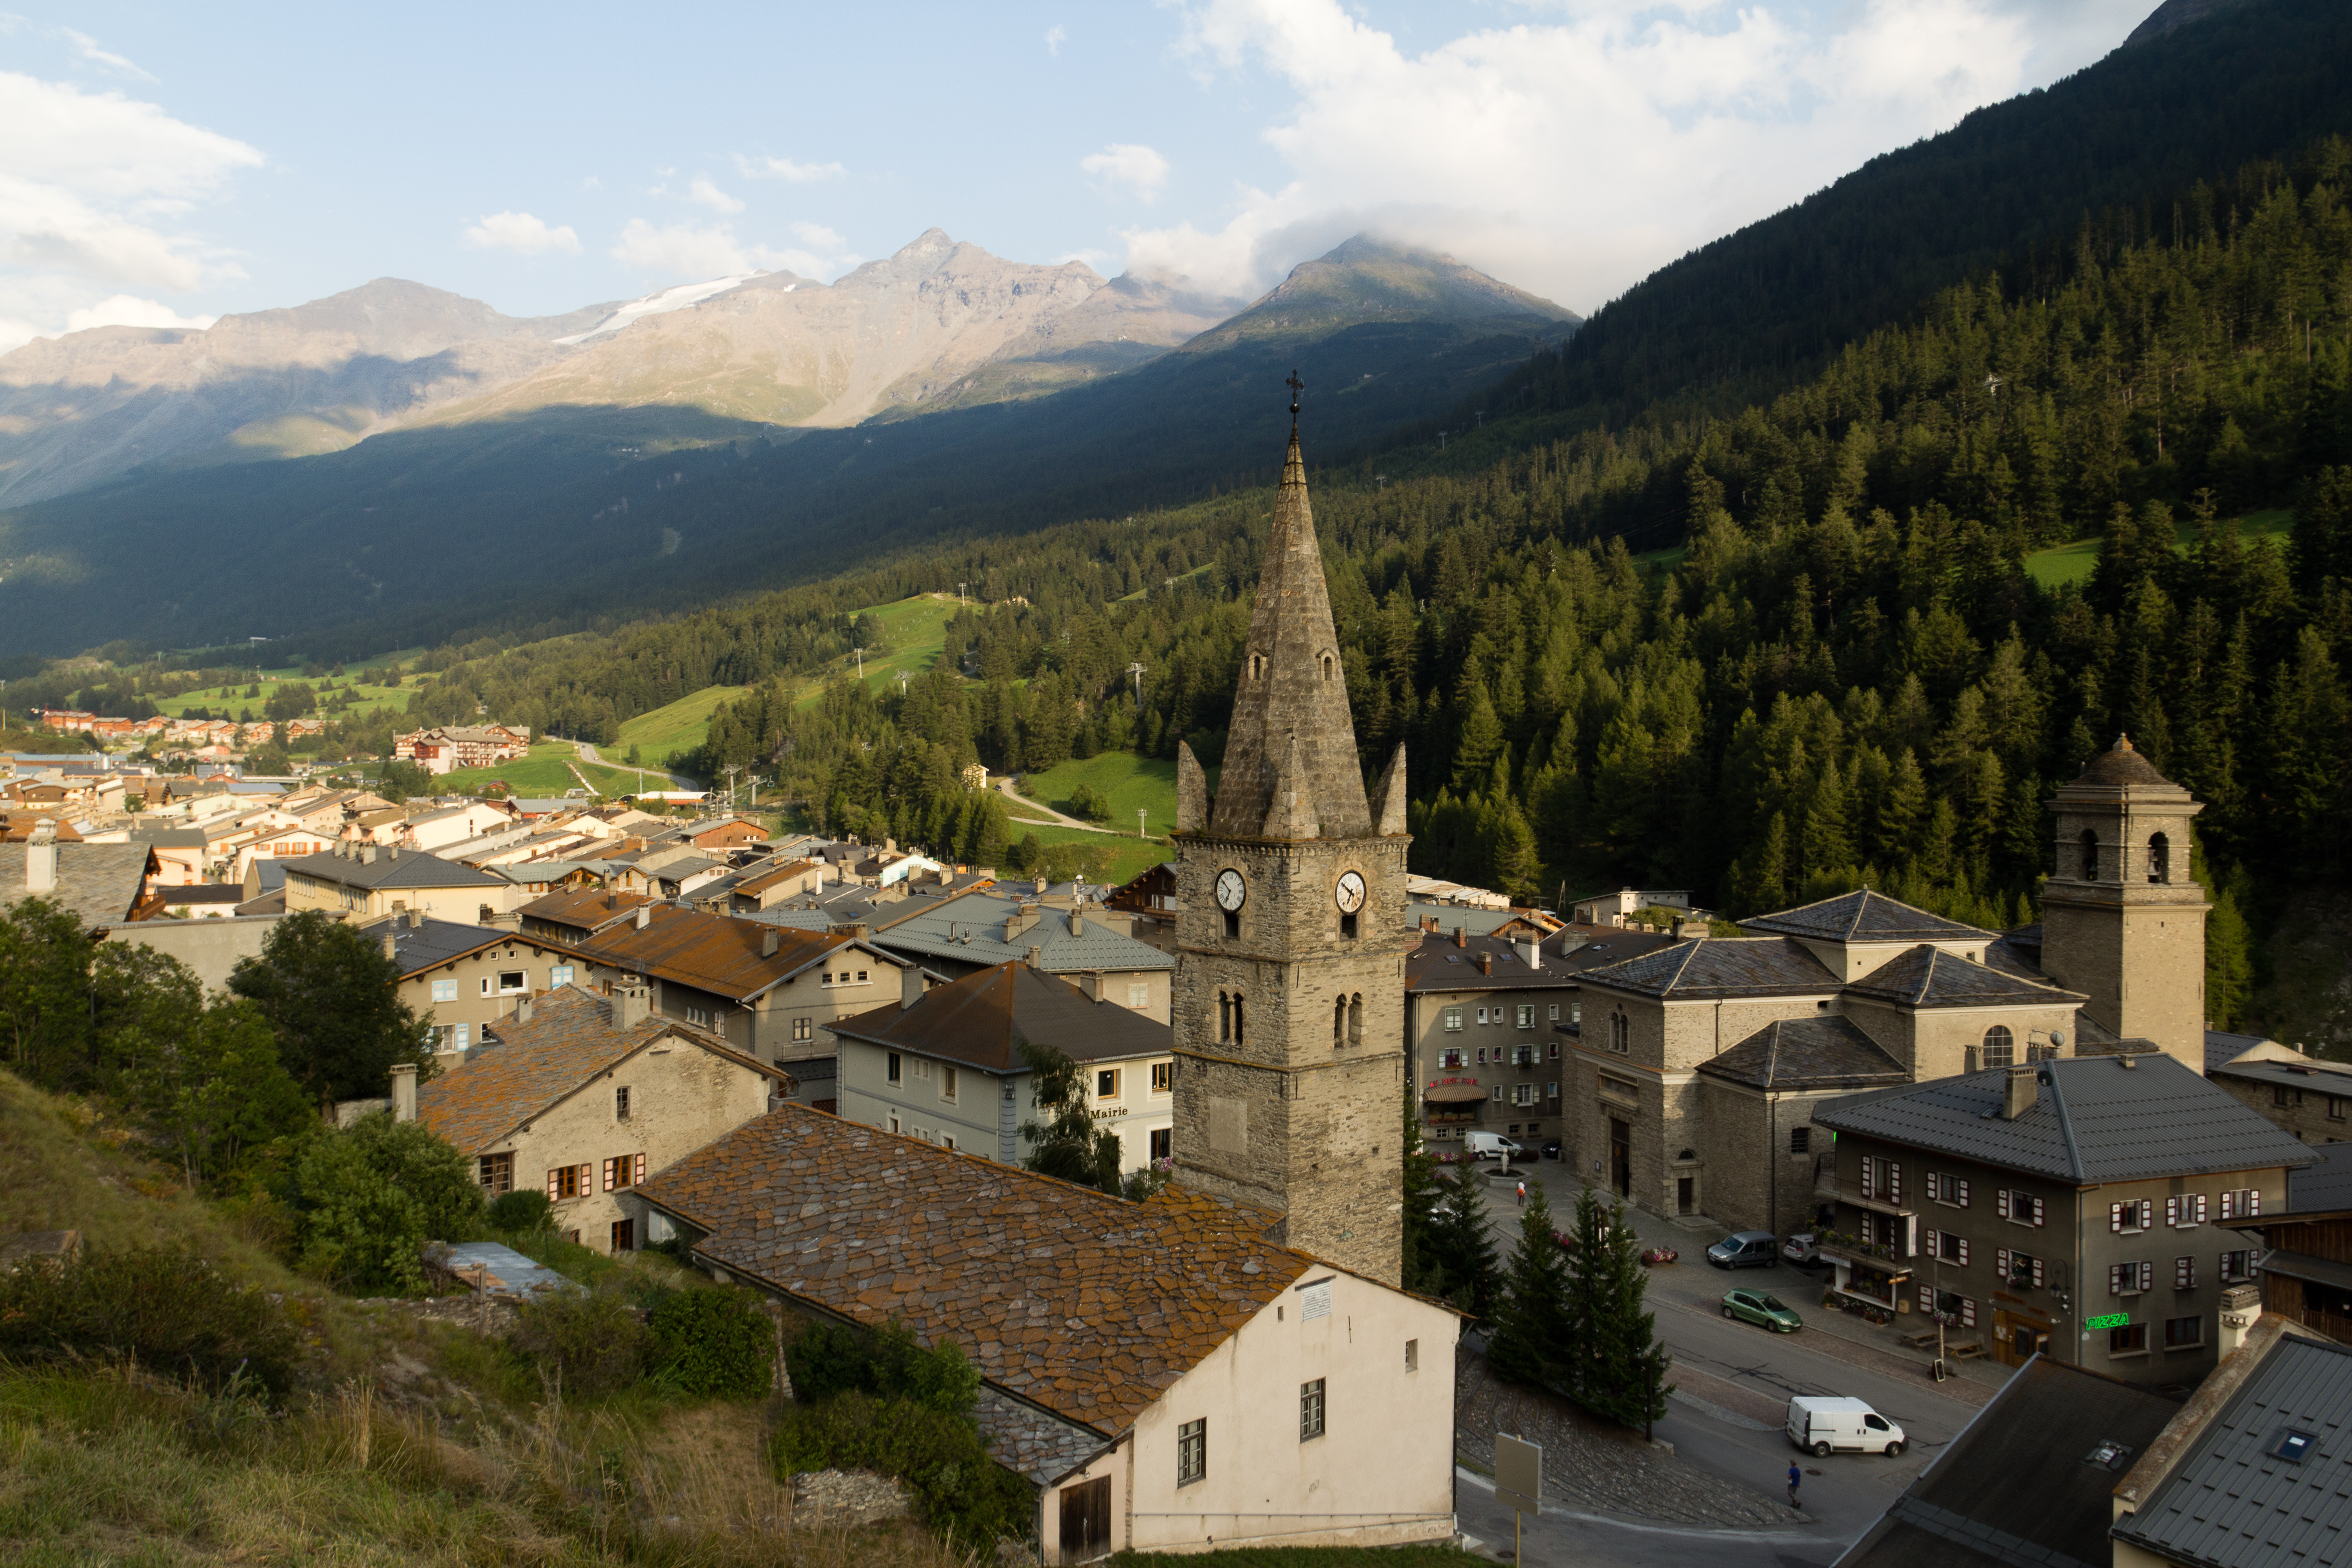 Lanslebourg France  city photos gallery : Description Vue de Lanslebourg Mont Cenis vers le Col du Mont Cenis ...